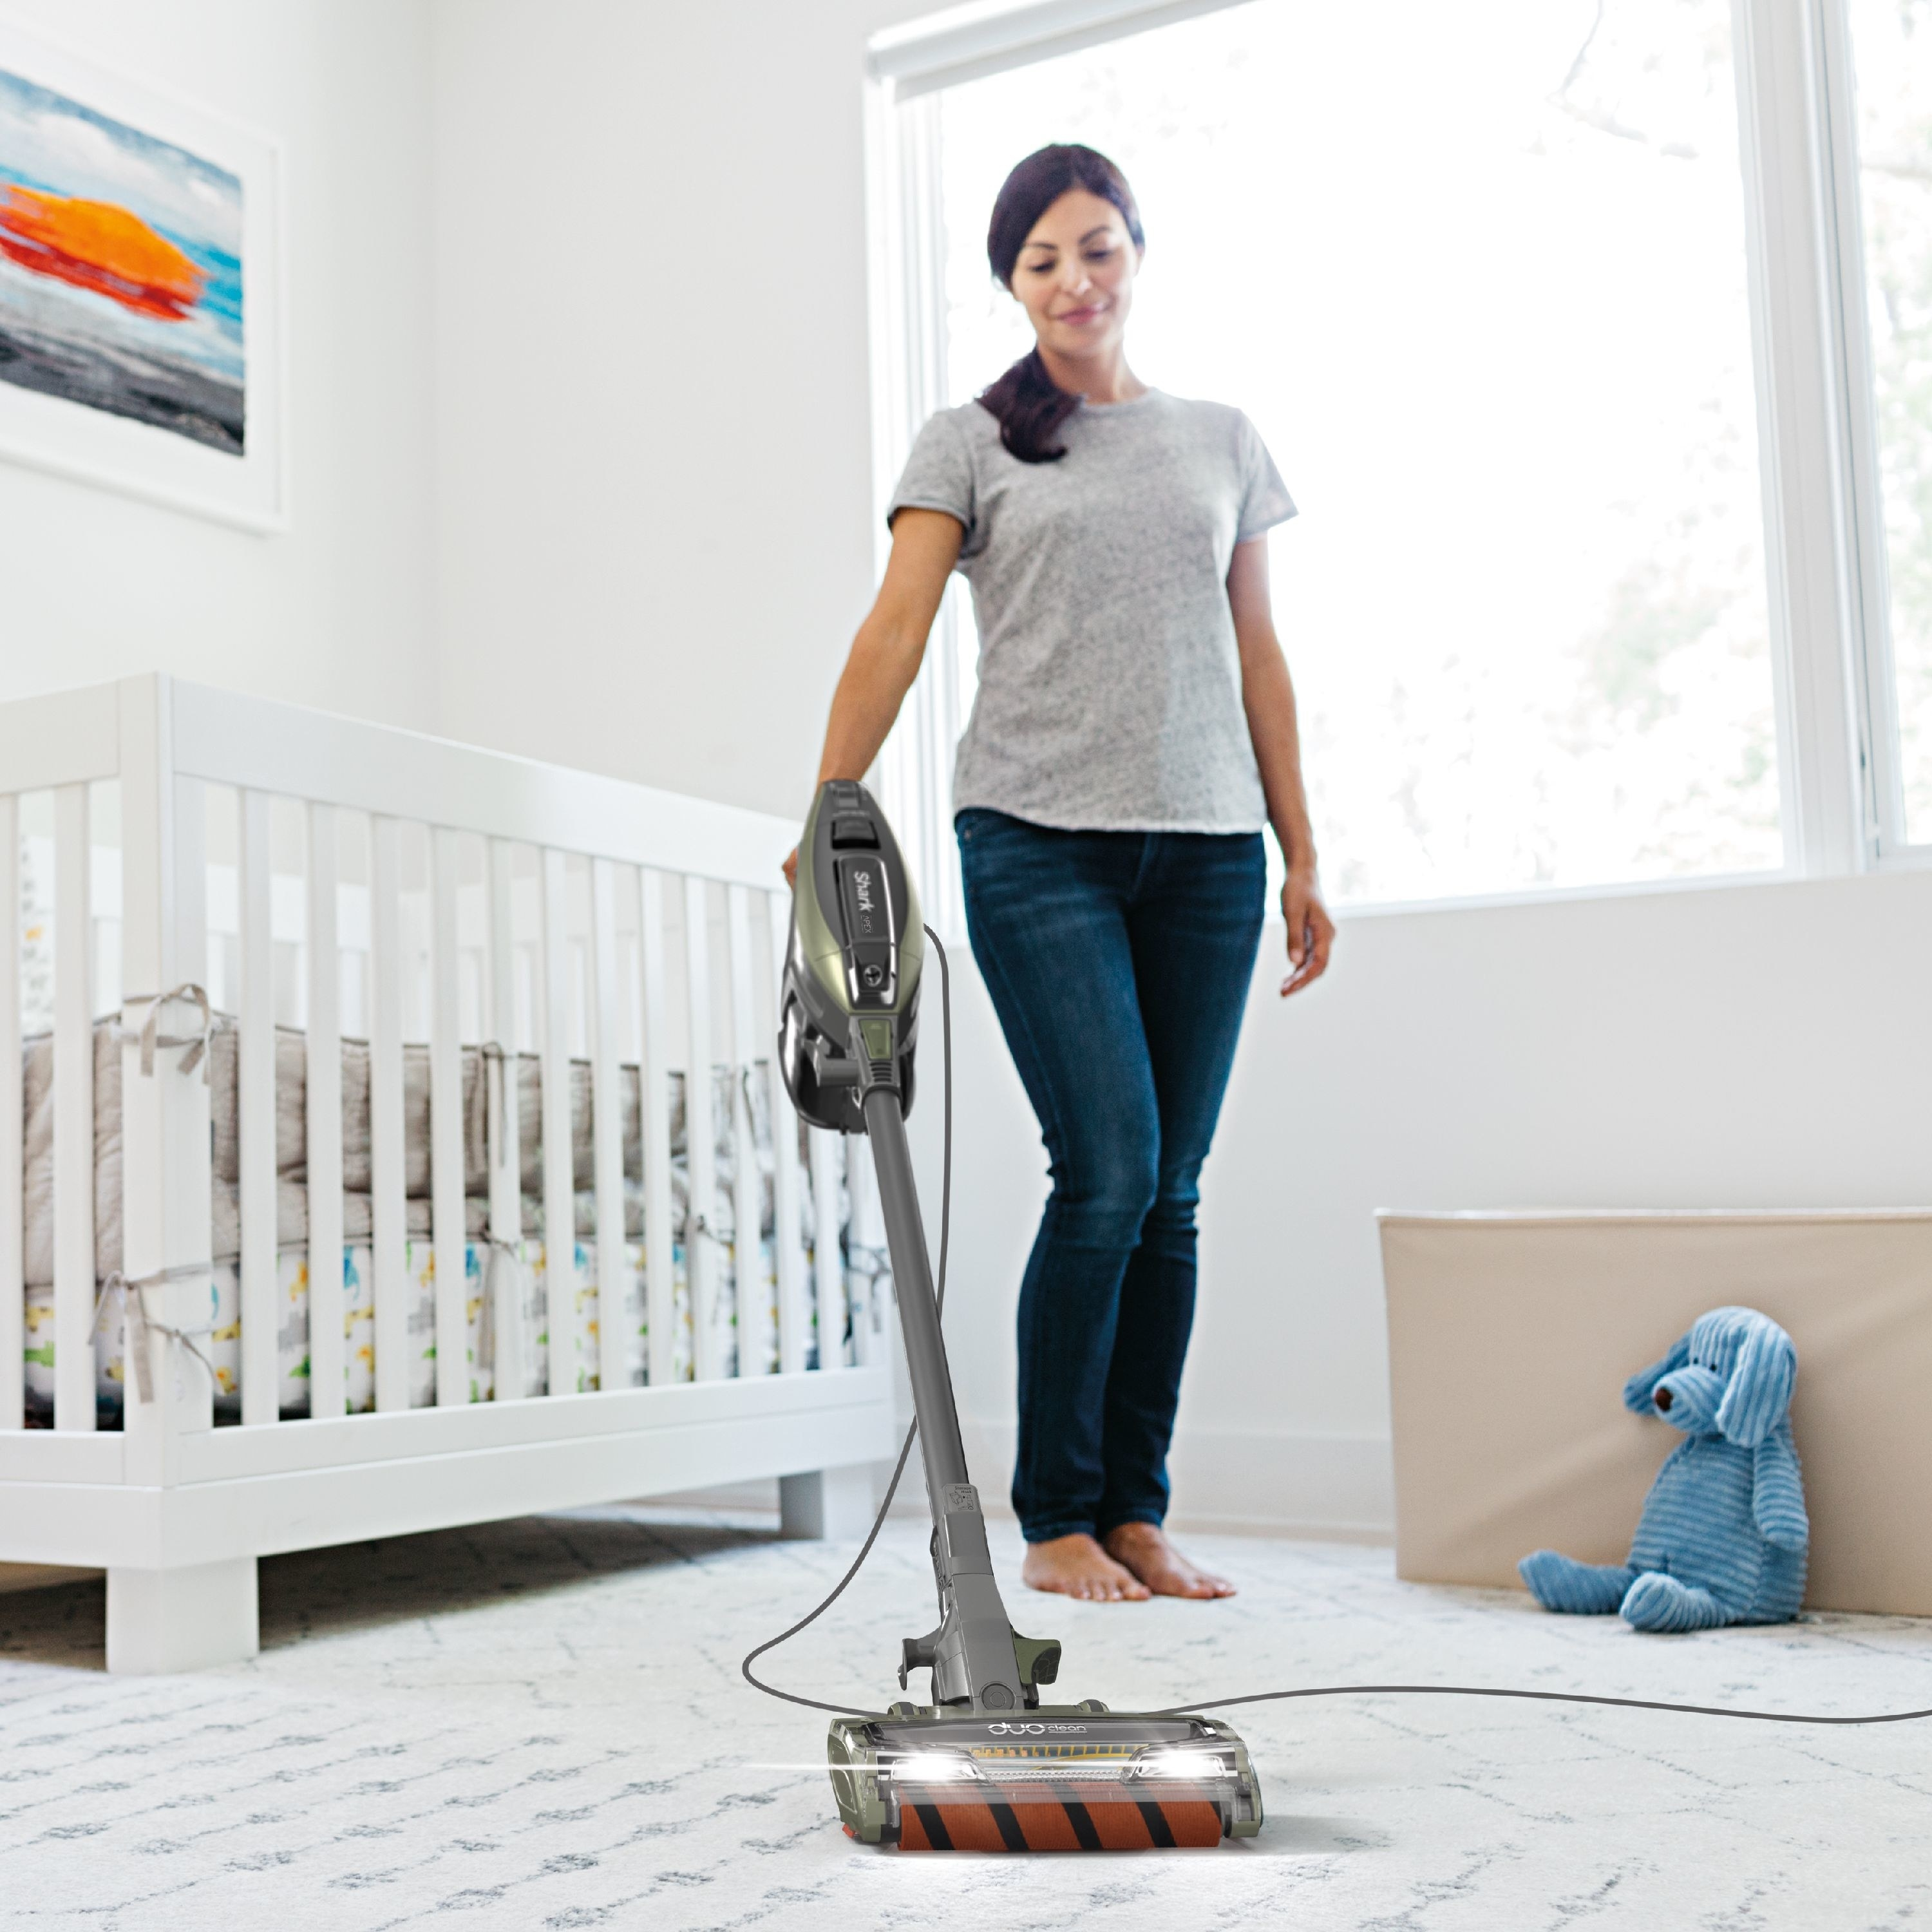 person using a shark stick vacuum in a child's nursery